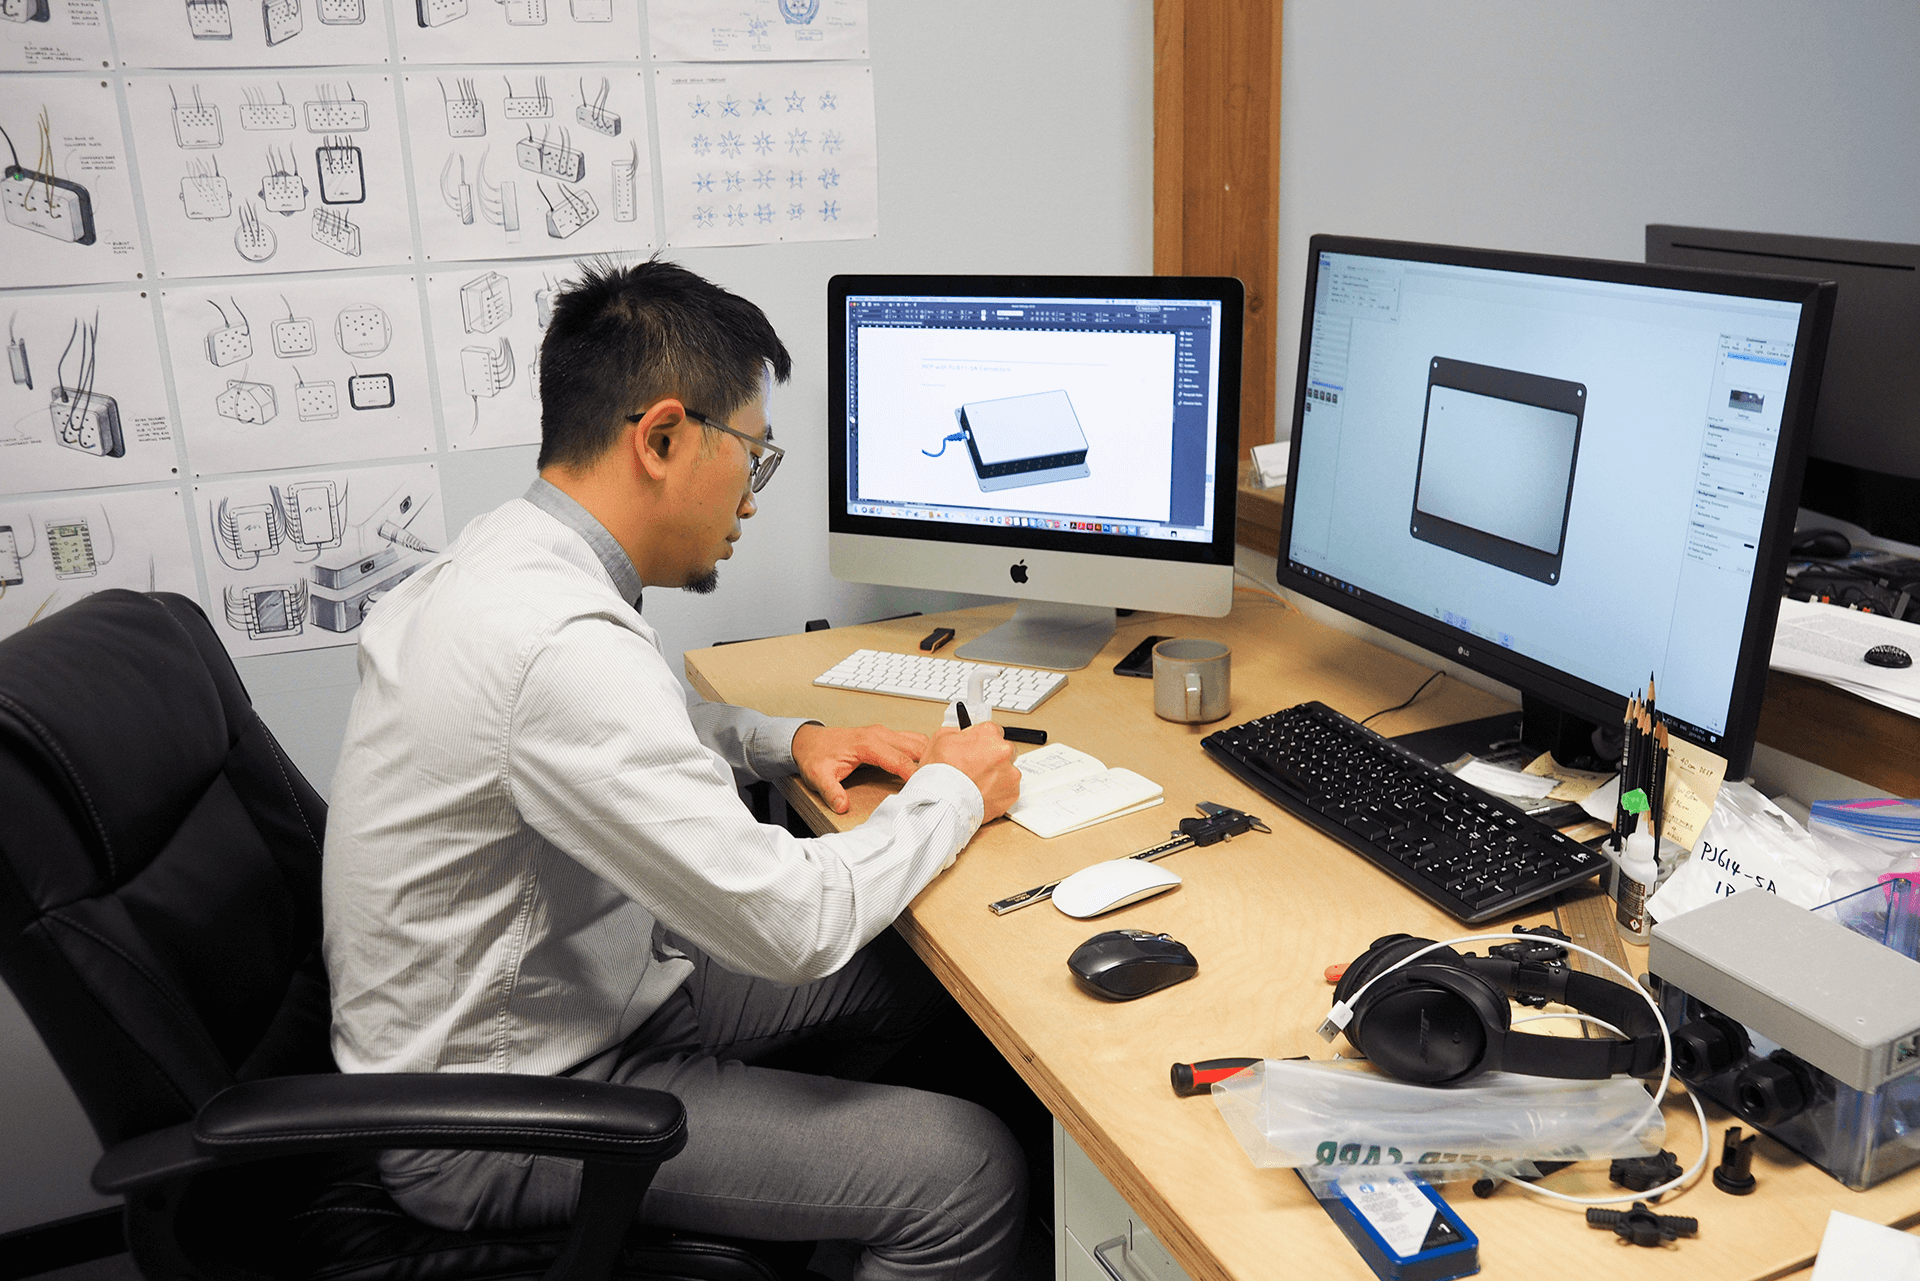 An industrial designer at their desk in front of their computer, sketching with pen and paper.